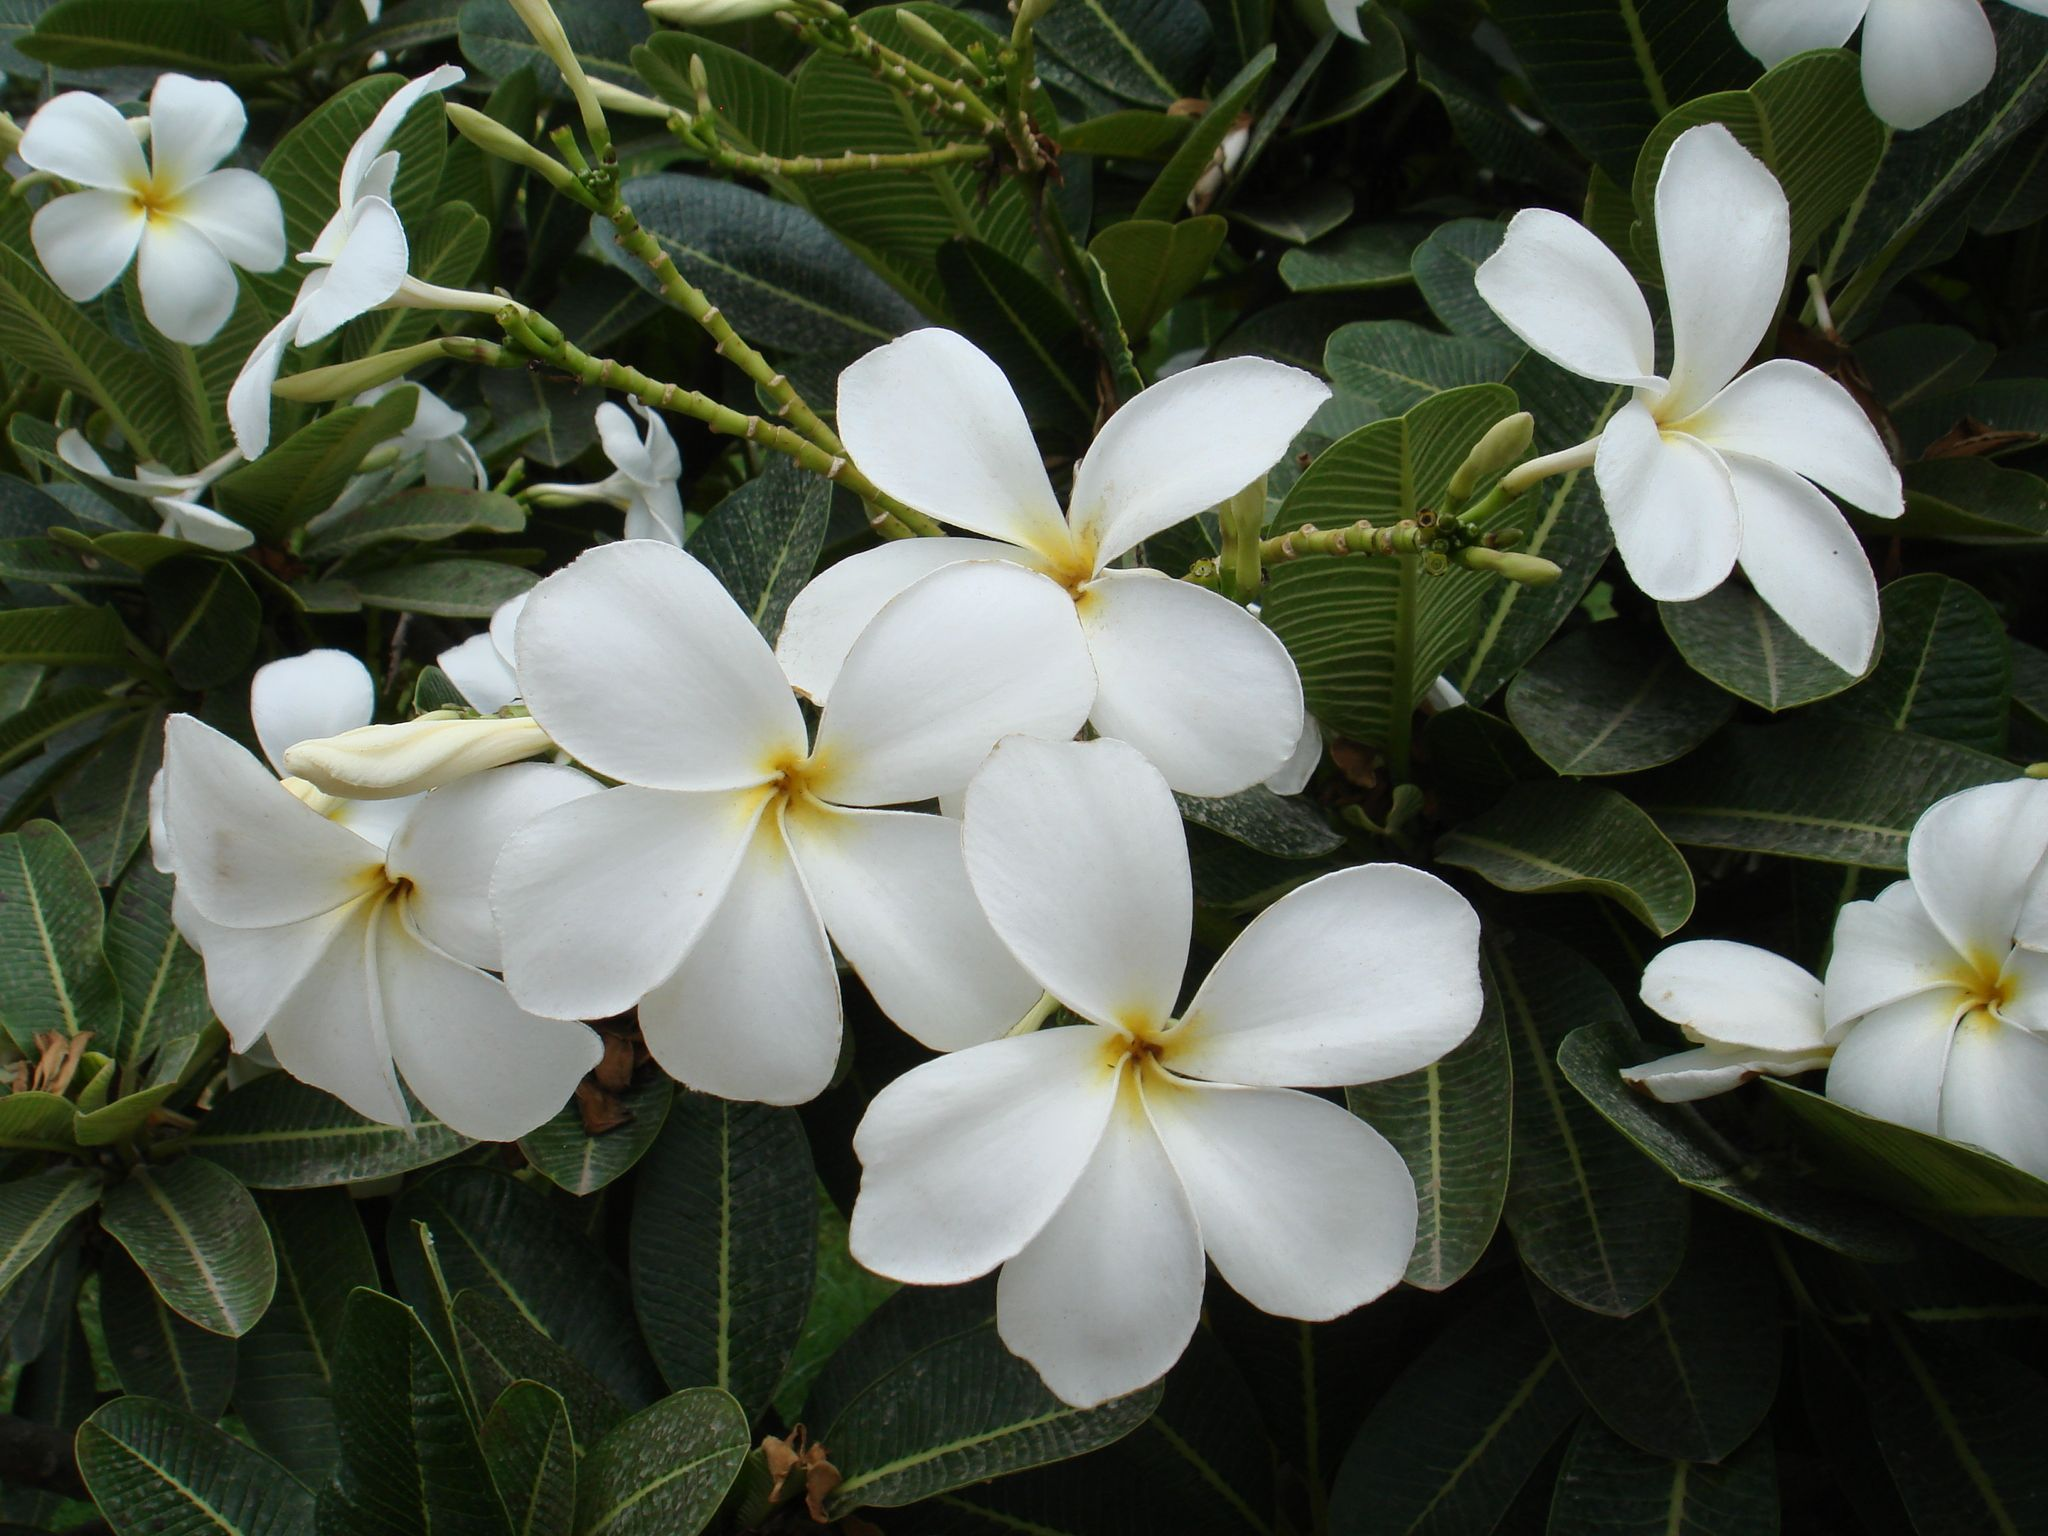 100 types of the most beautiful white flowers for your garden best types of white flowers white is taken into consideration as a binding and mirroring shade as it reflects all the lights as well as goes well with any type mightylinksfo